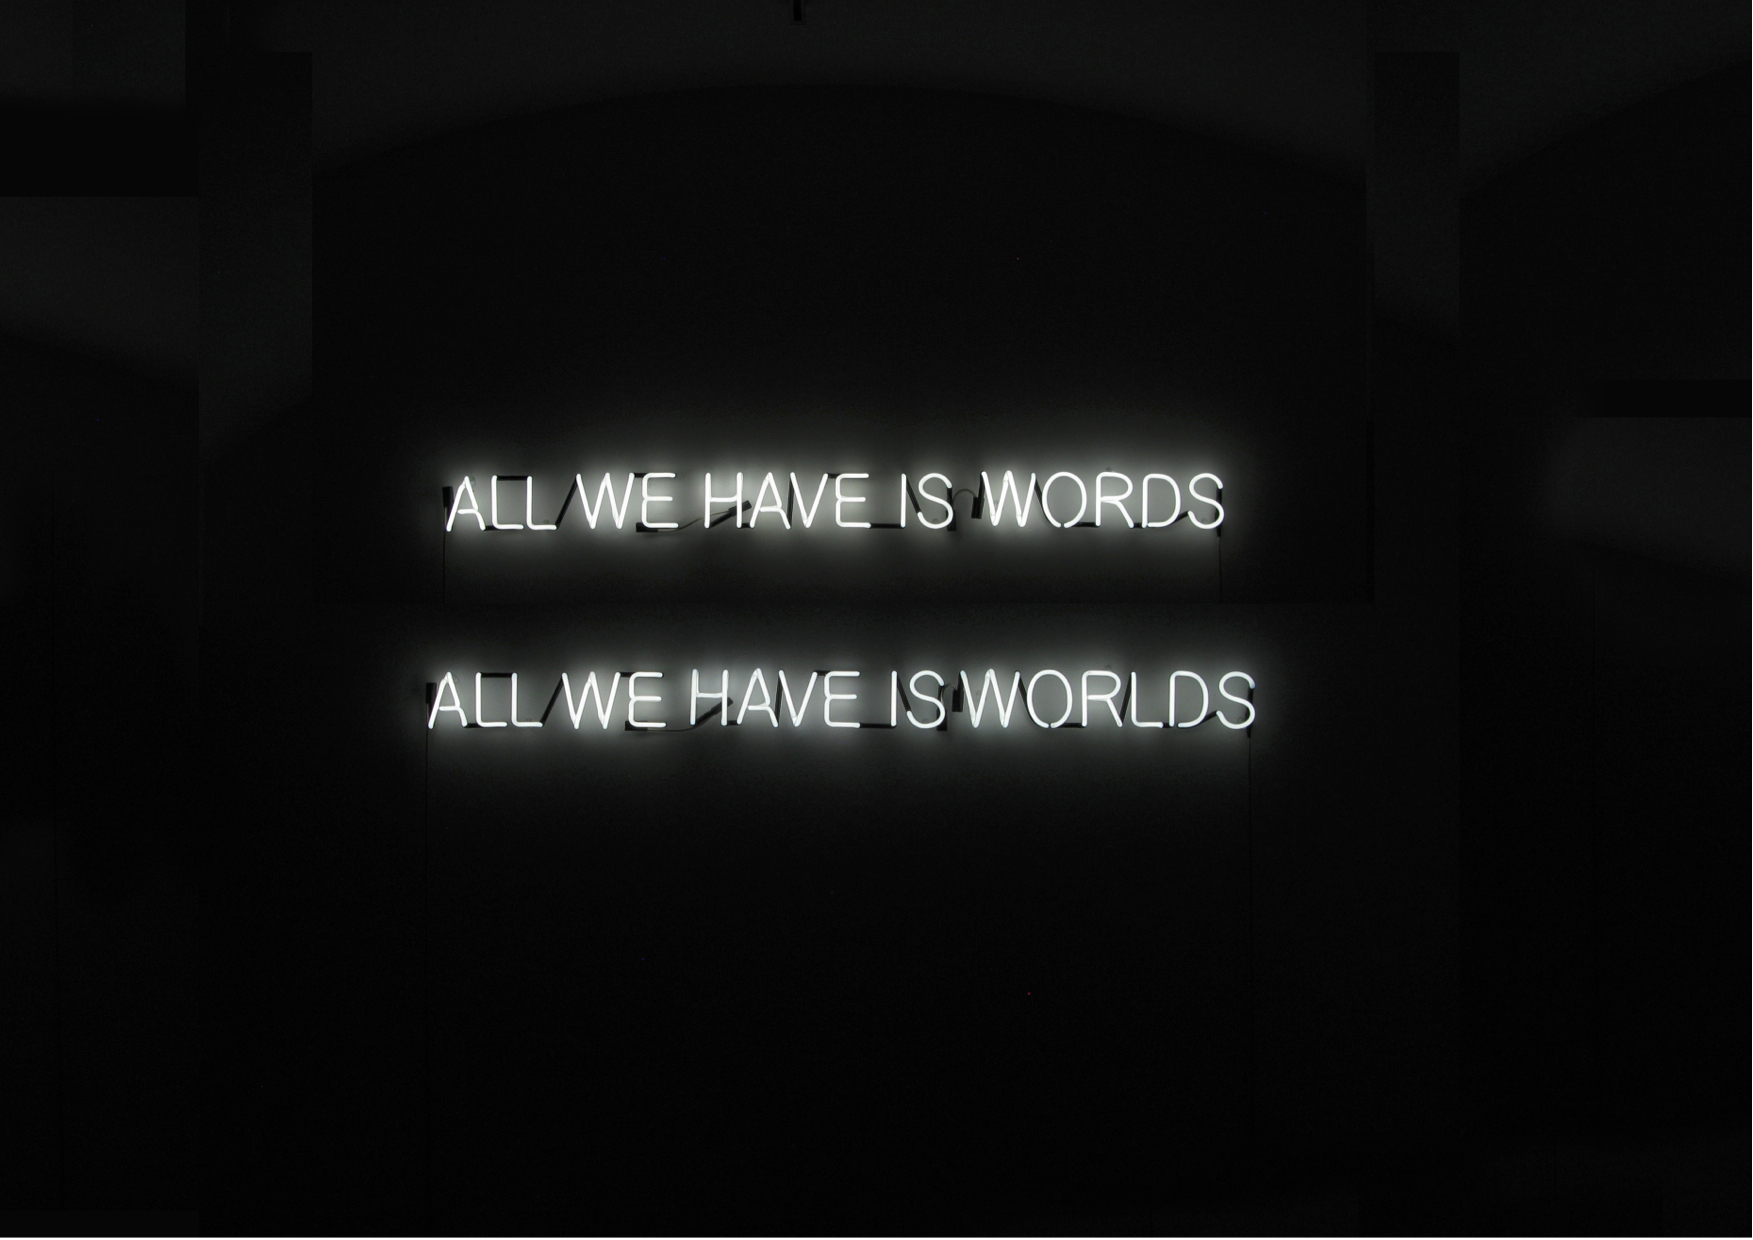 Tim Etchells, All We Have, 2011. Neon shown in two possible formations. 188 x 41 cm. Edition of 3 (+1 AP).